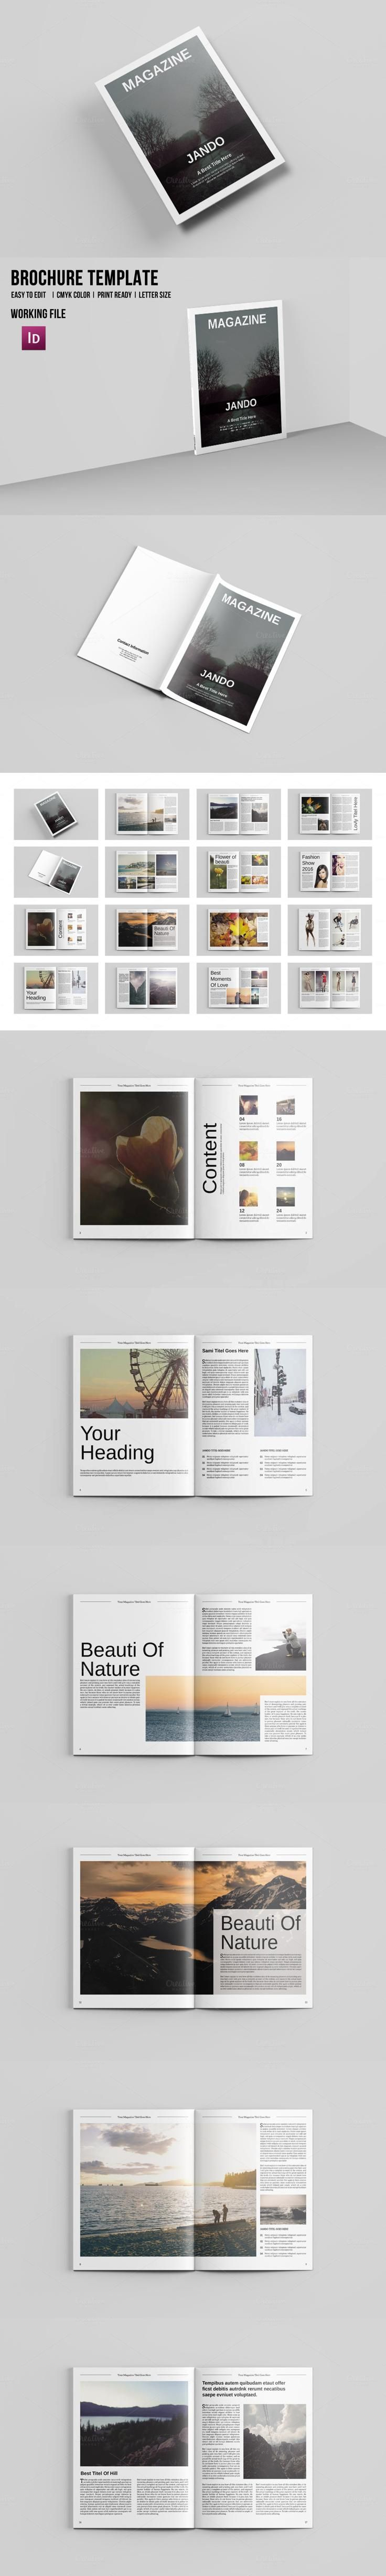 65 best Cool & Clean Brochures, Magazines images on Pinterest ...